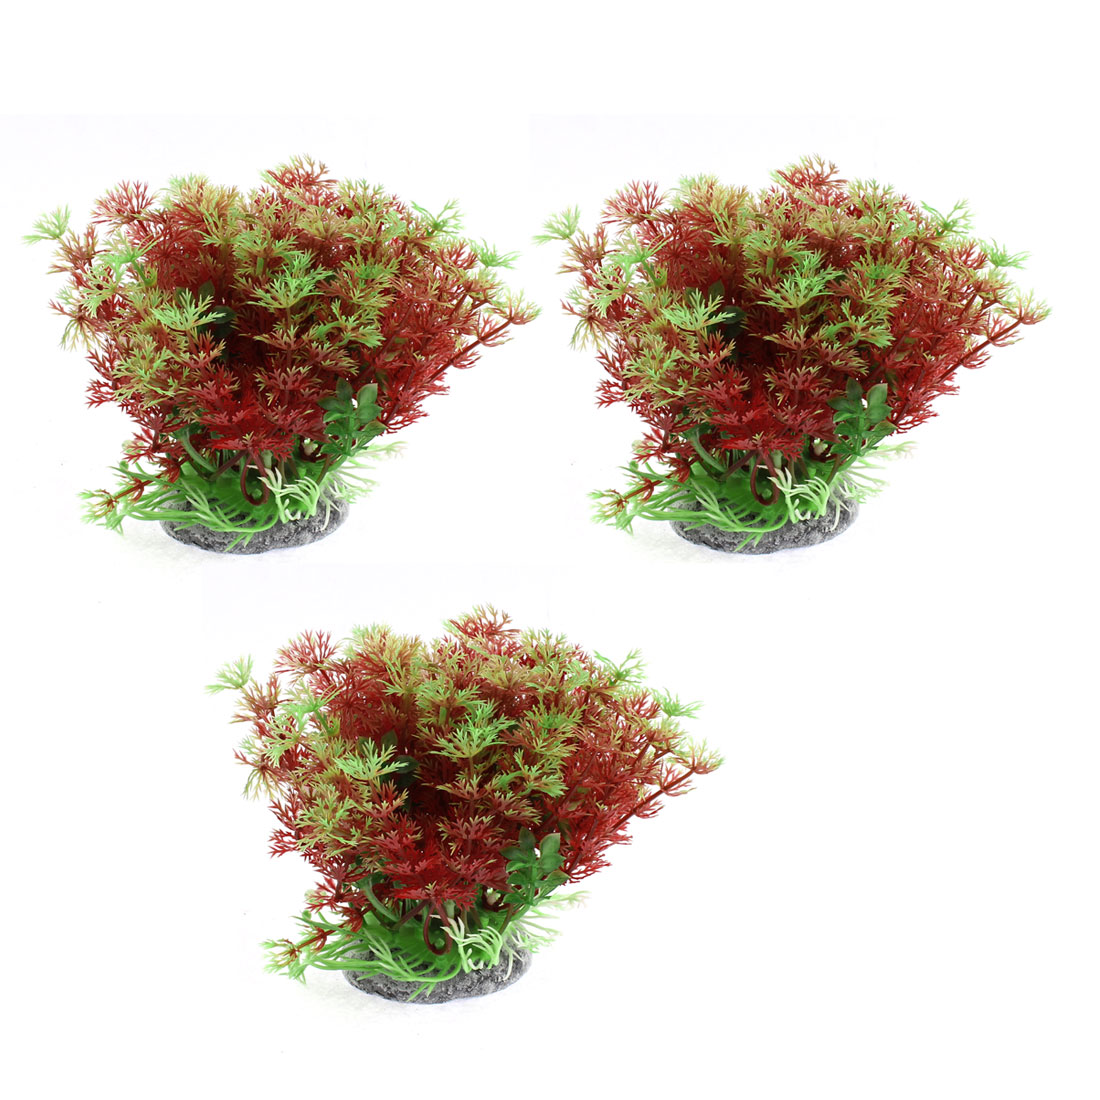 Fish Tank Fishbowl Water Plant Landscape Grass Red Green 10 x 16cm 3pcs